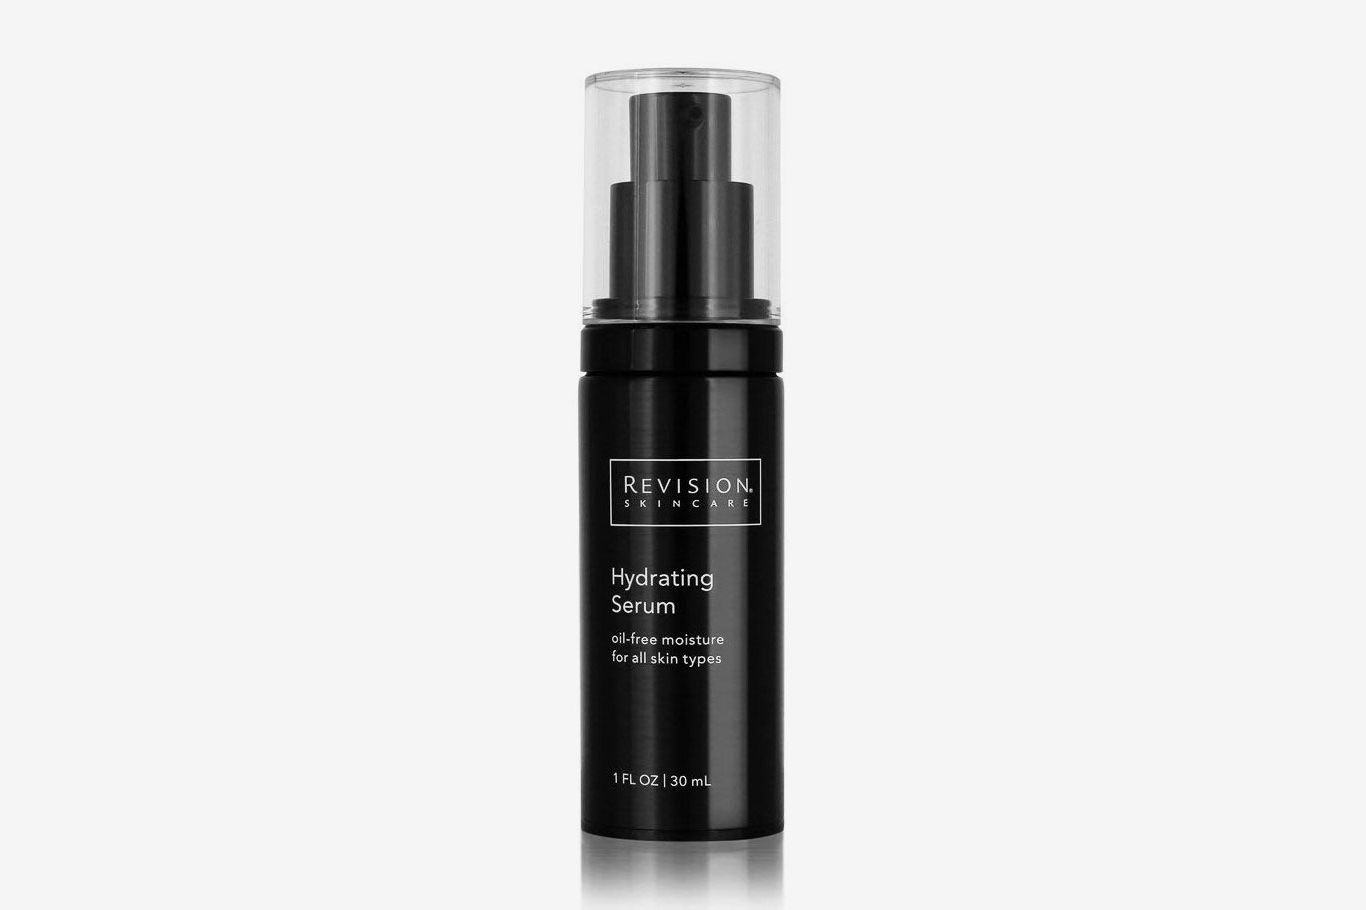 Revision Skincare Hydrating Serum